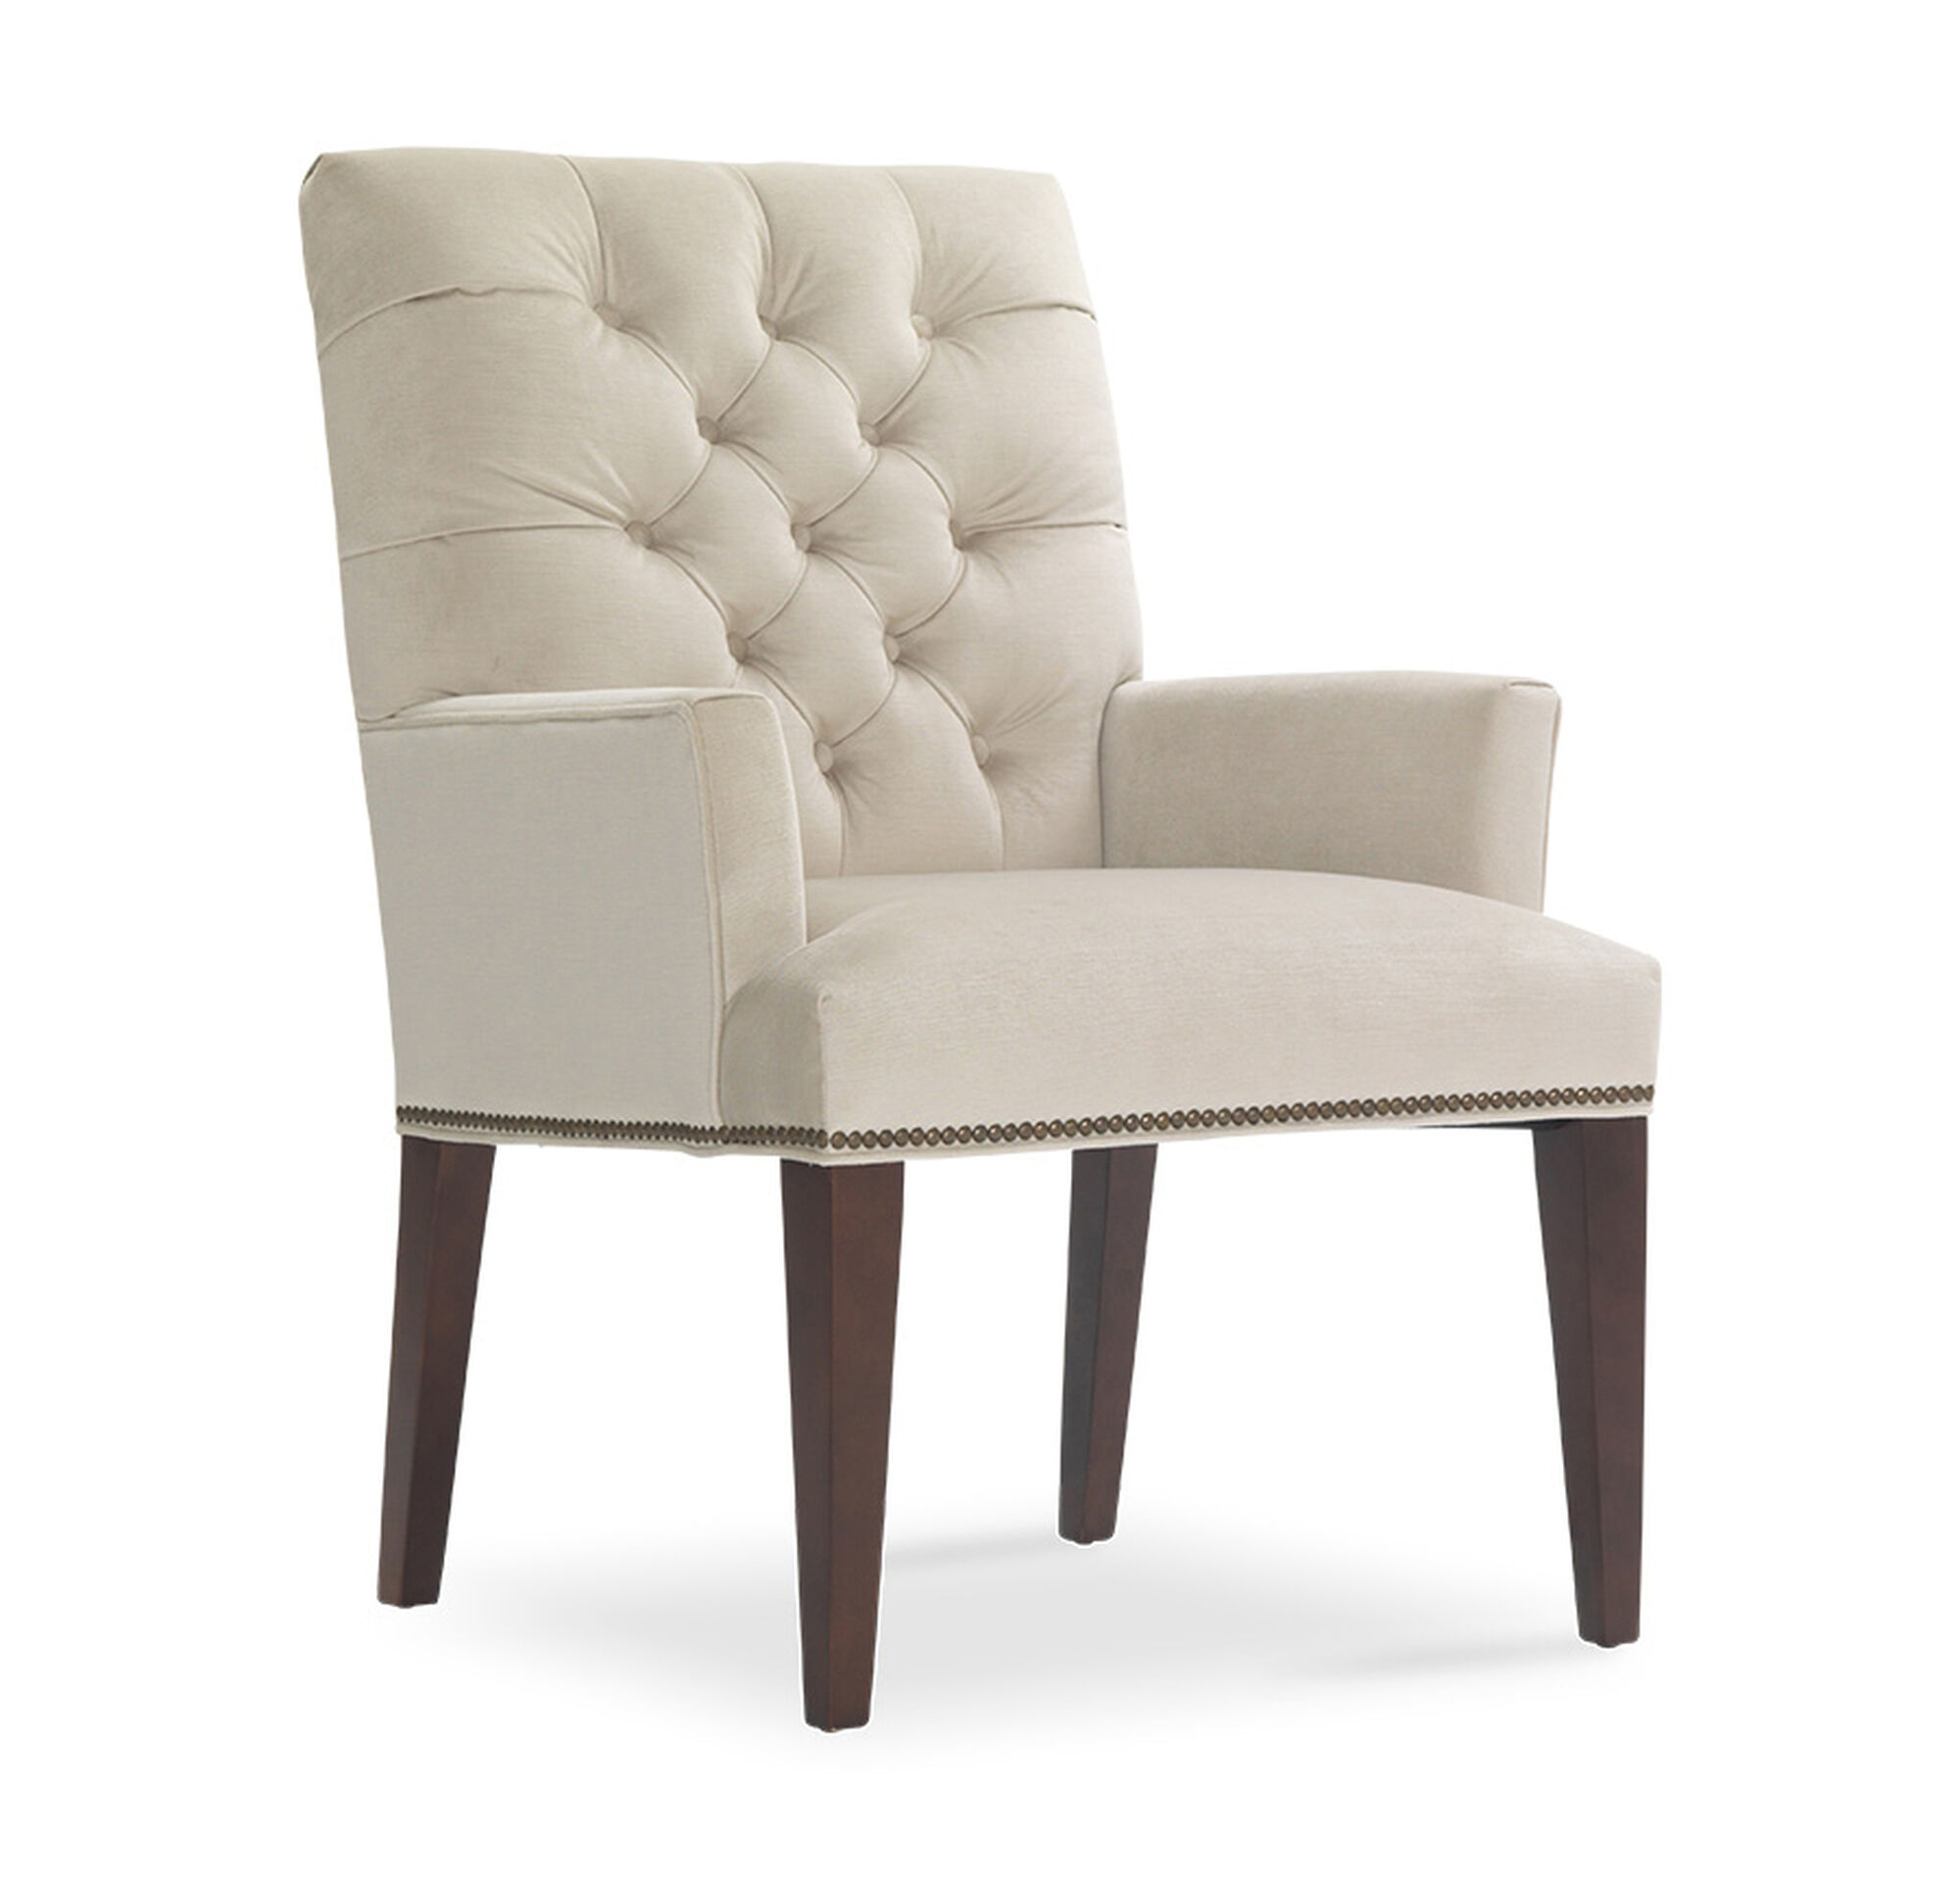 Jacques Arm Dining Chair